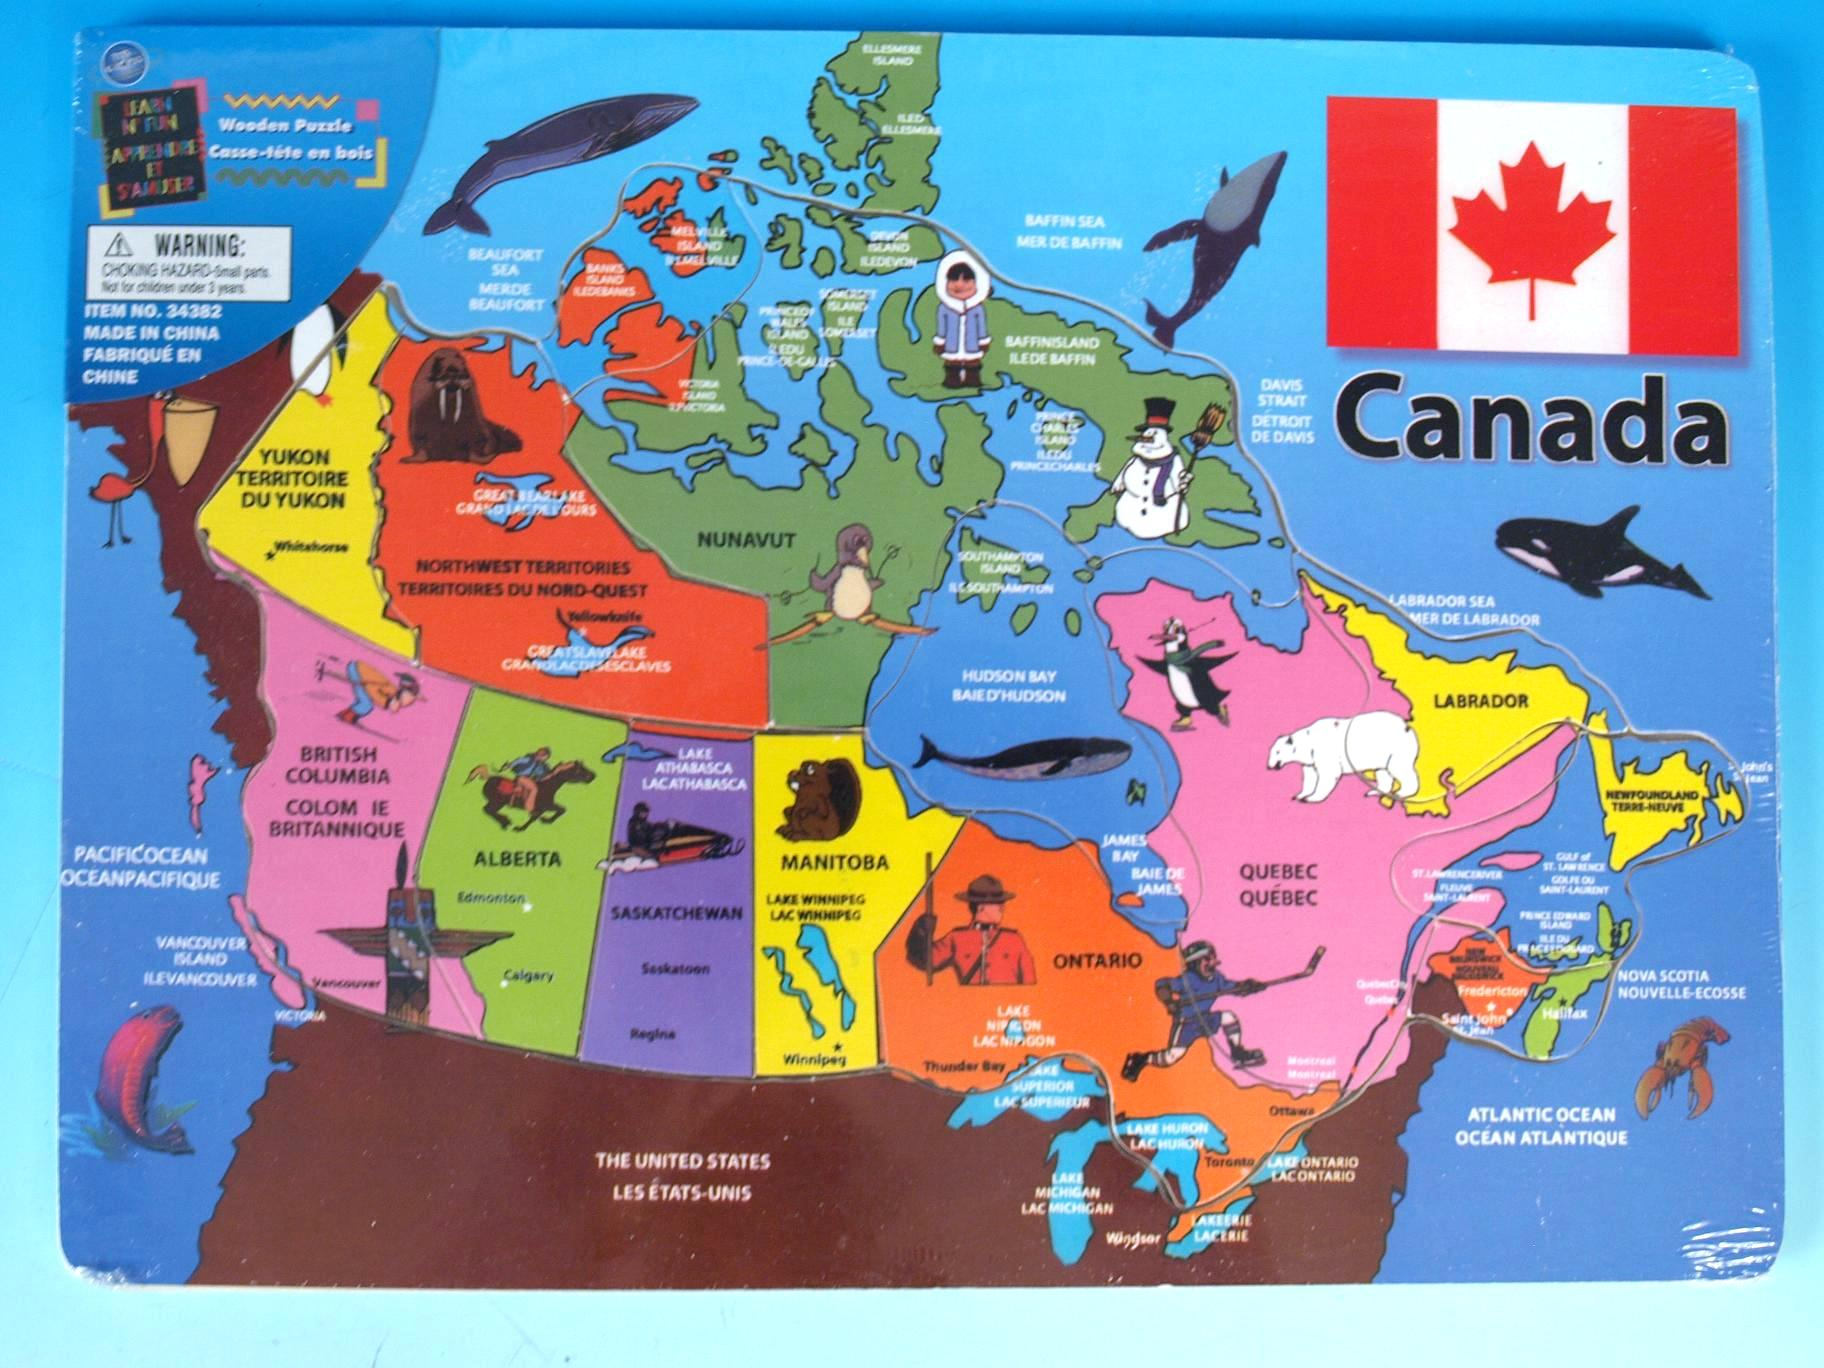 News and entertainment map of canada Jan 05 2013 213557